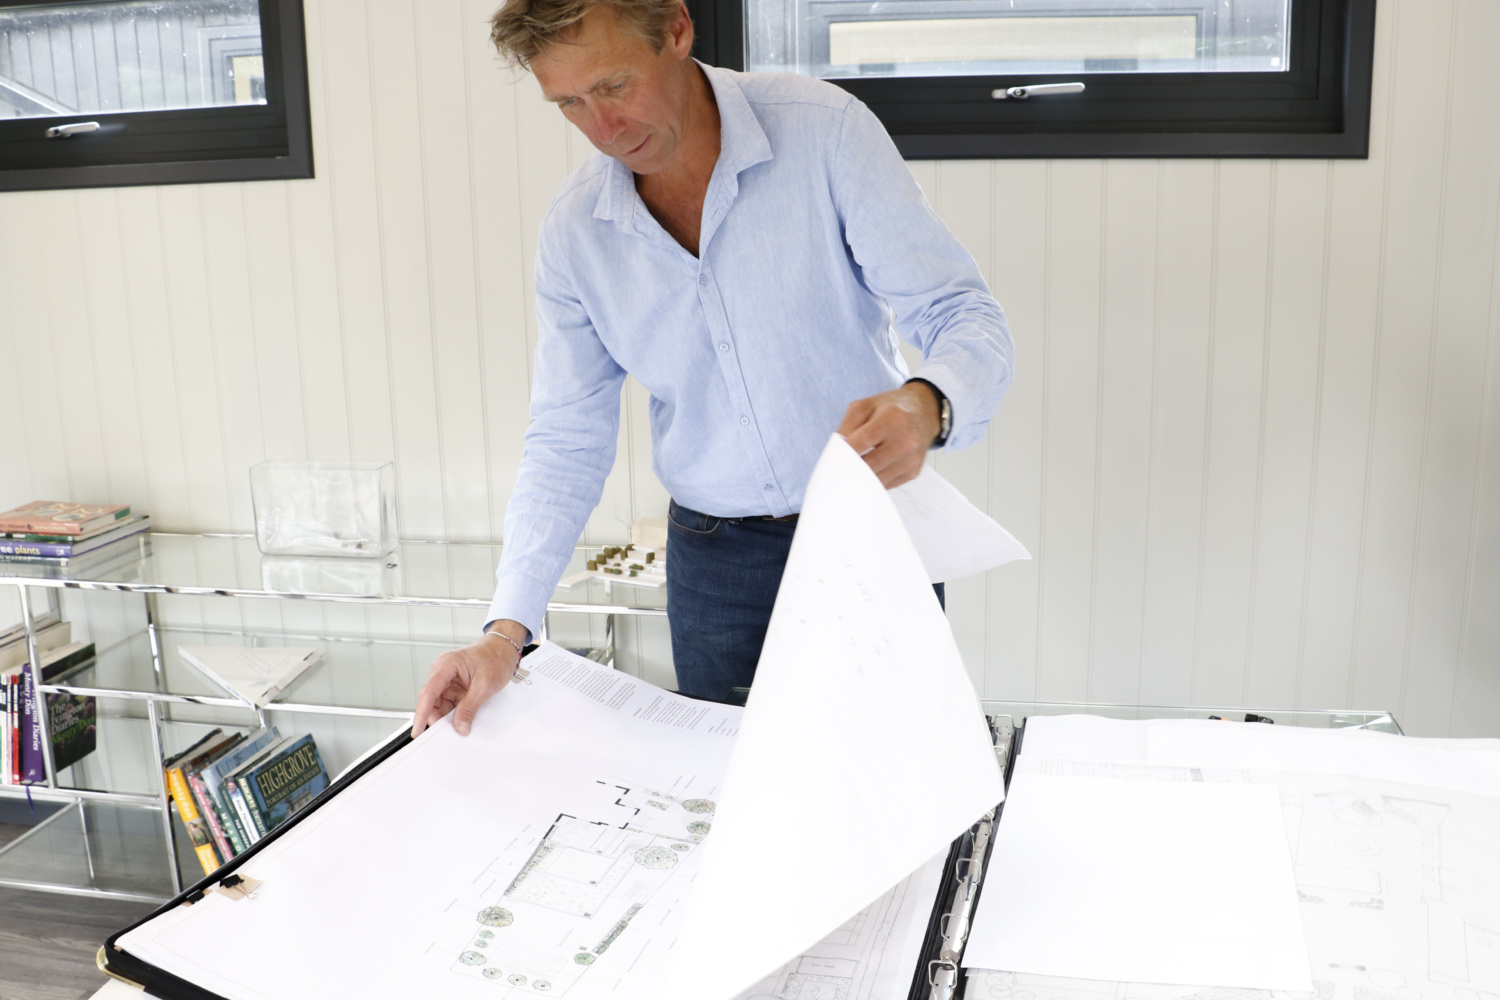 Tom Gadsby stands over a table and flicks through large sheets of paper that show plans of garden designs he has created